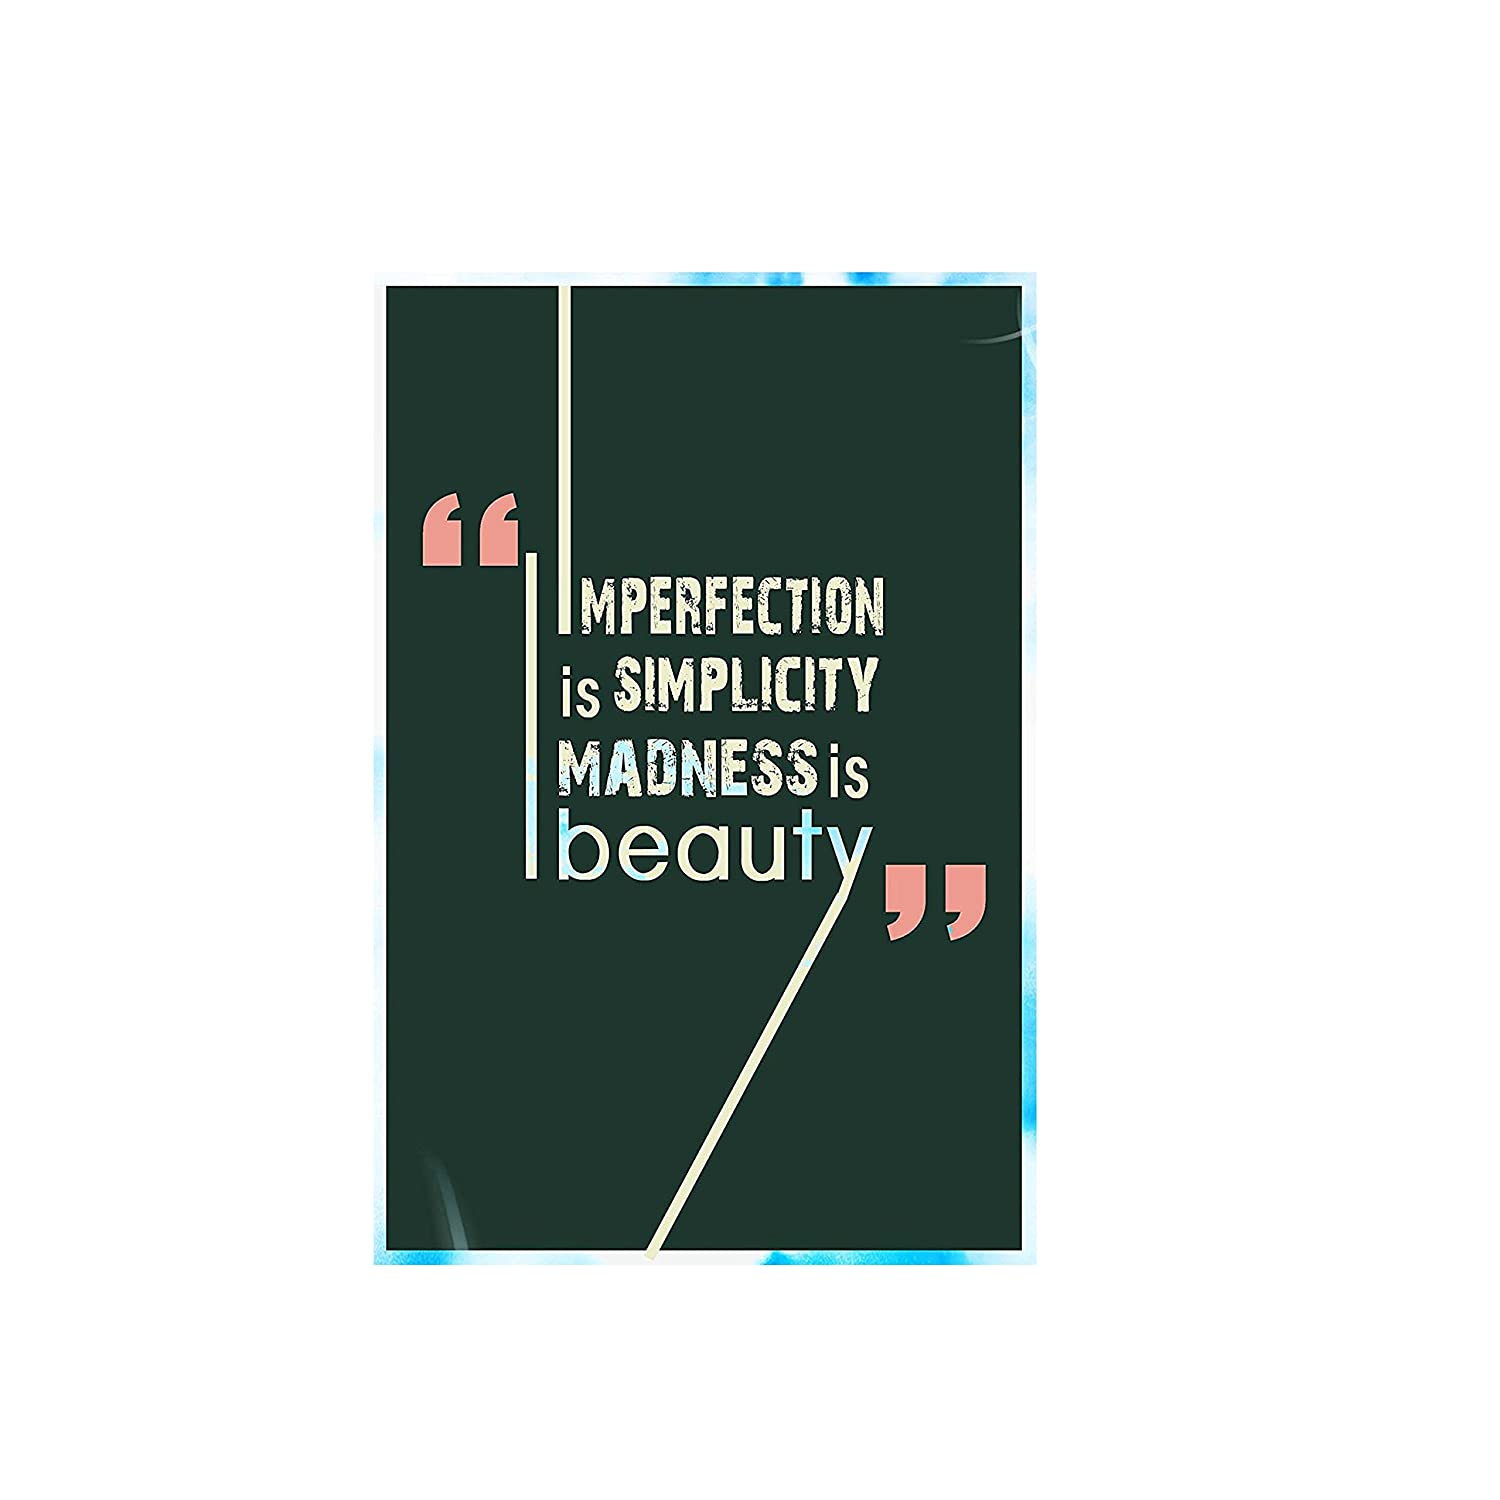 Imperfection Is Simplicity Madness Wall Poster Quotes Motivation 12x18 By Giftshala Amazon In Home Kitchen